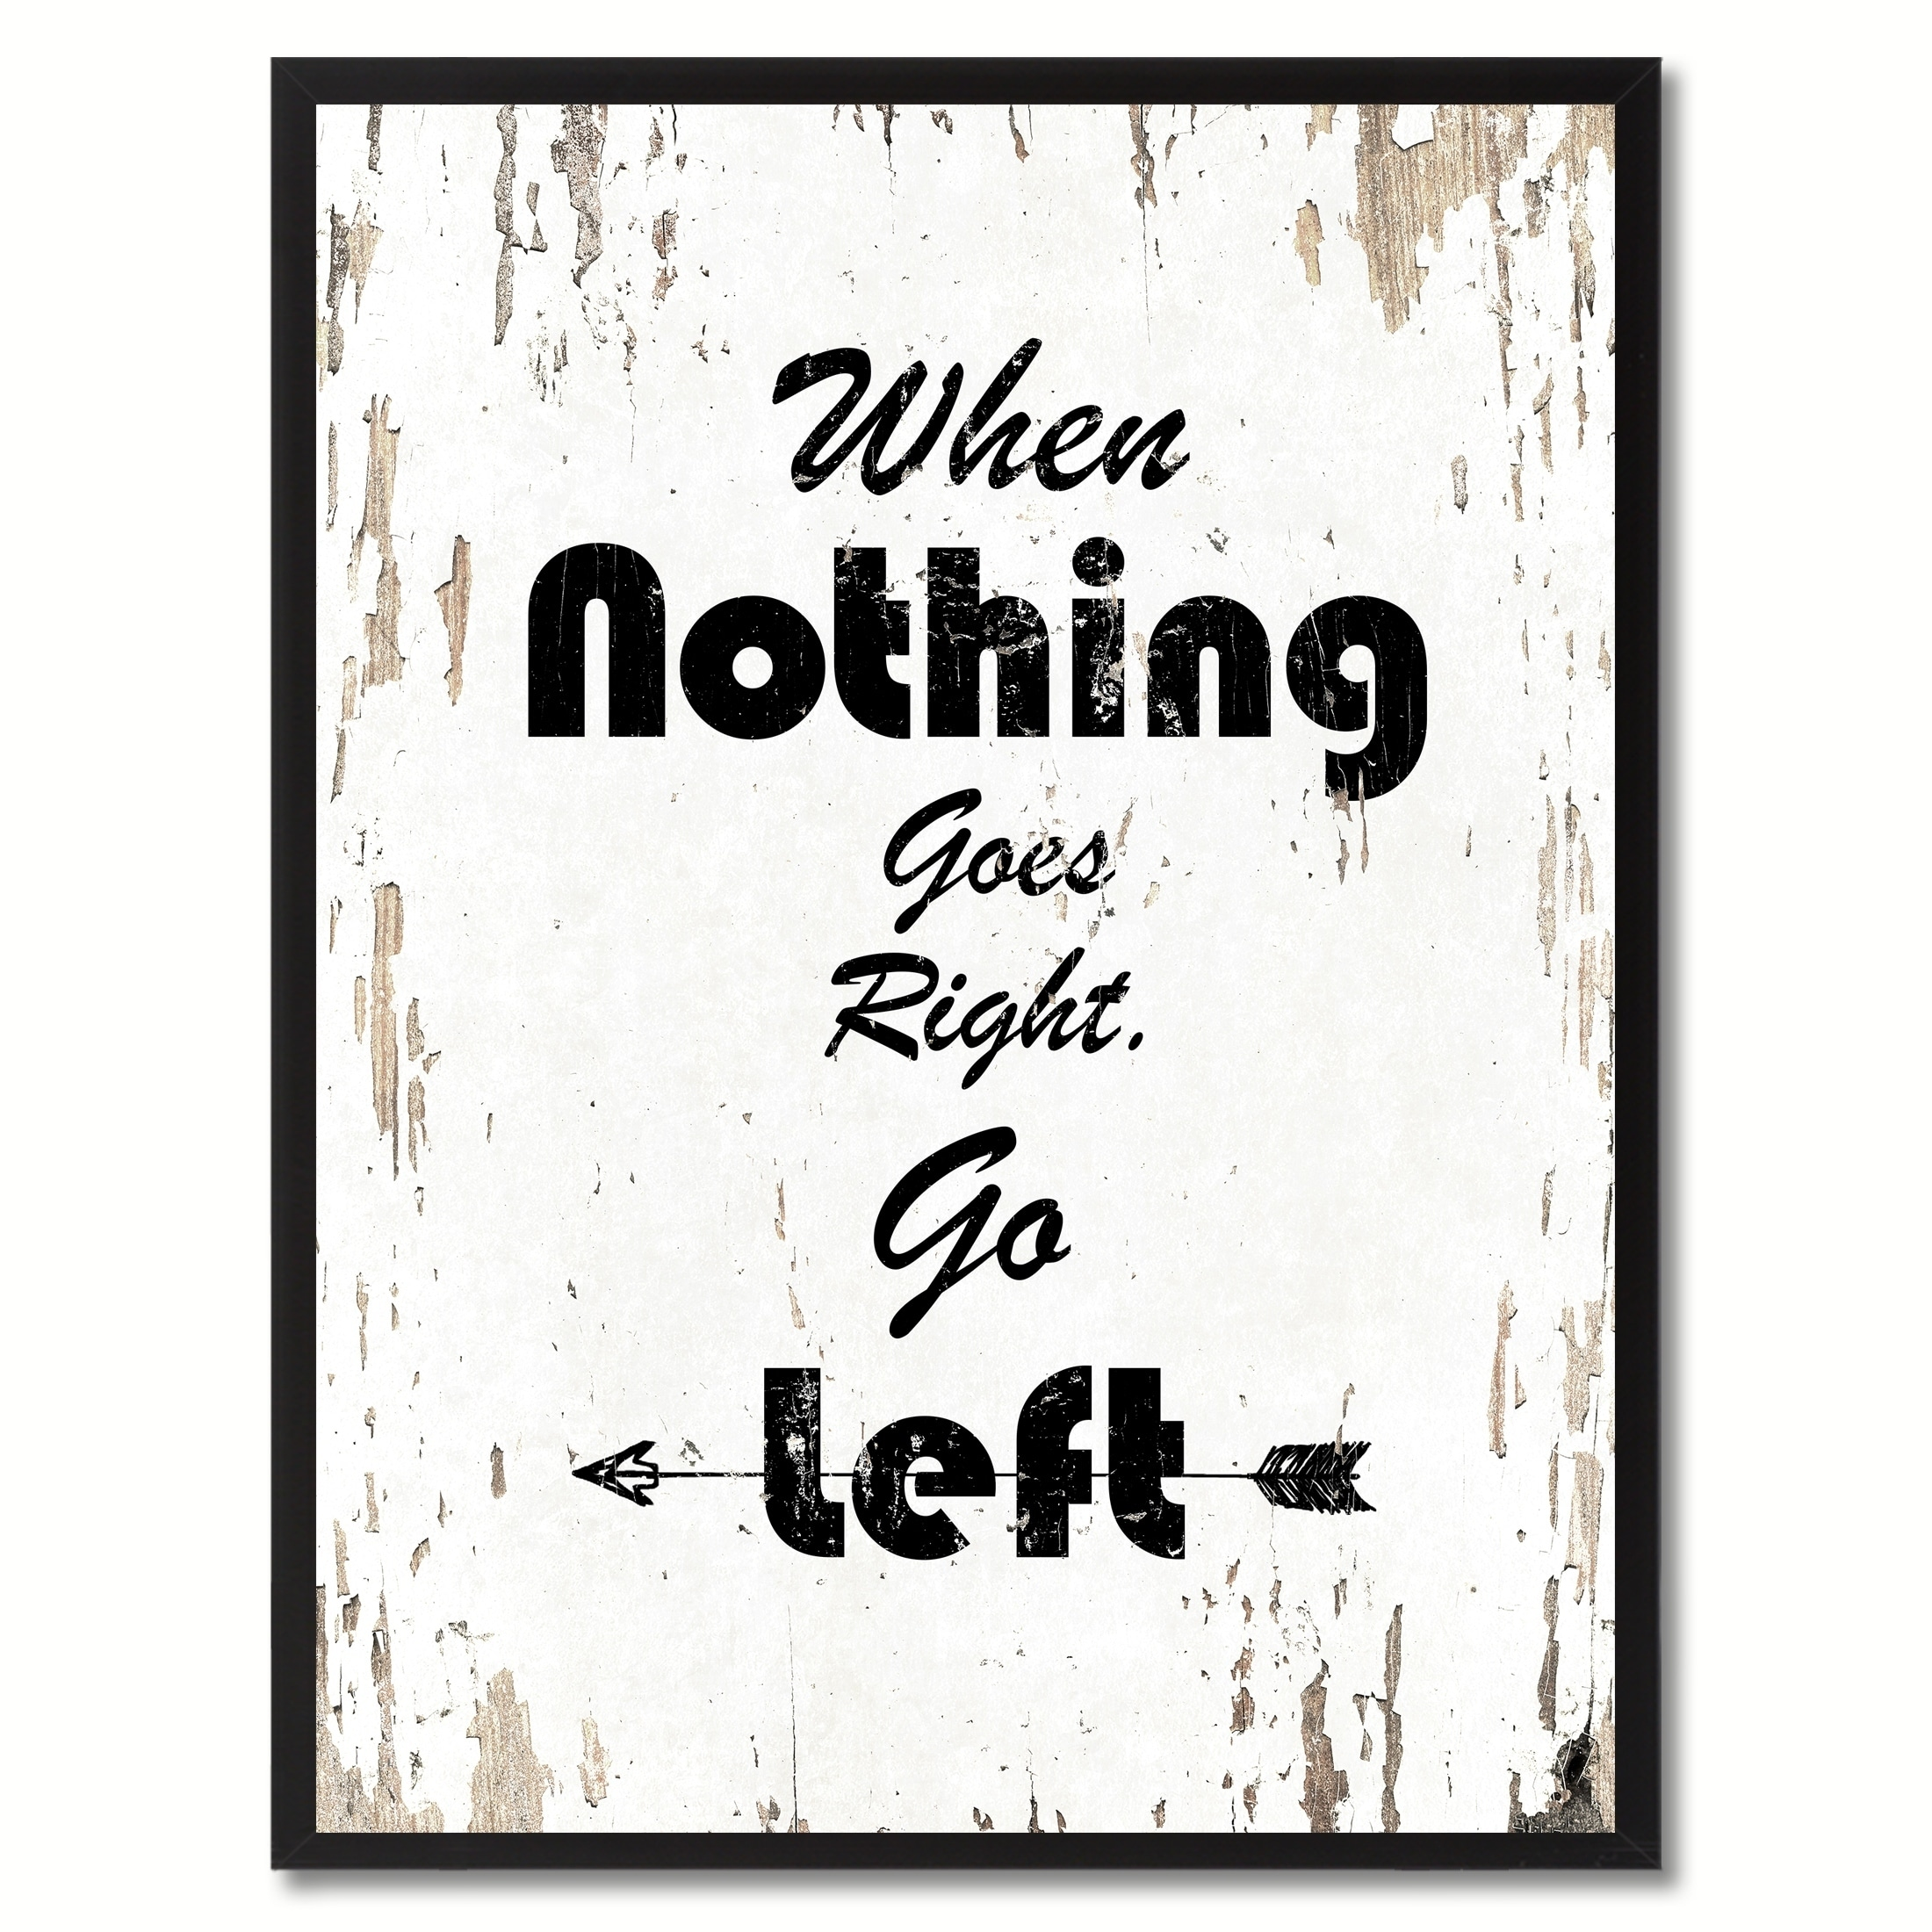 When nothing goes right go left motivation quote saying canvas when nothing goes right go left motivation quote saying canvas print picture frame home decor wall art free shipping on orders over 45 overstock jeuxipadfo Gallery